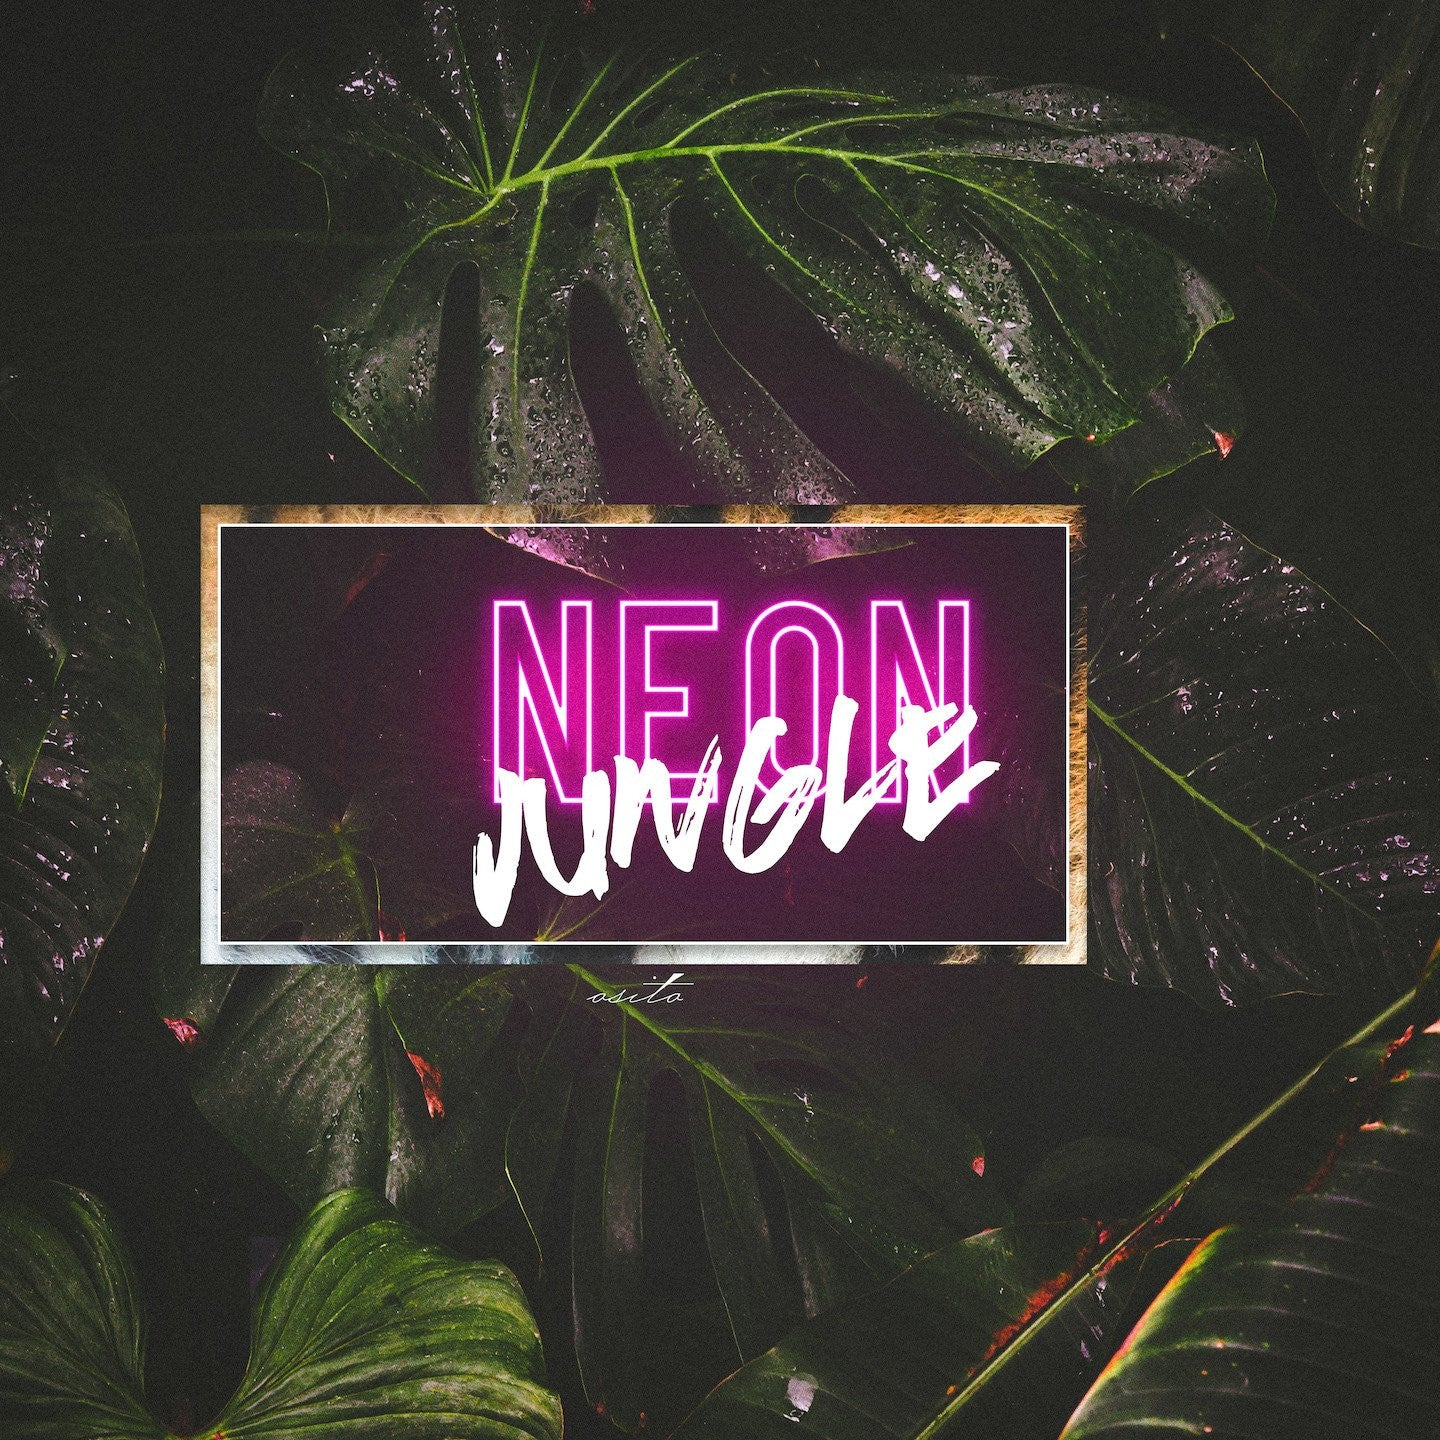 Neon Jungle - OSITO